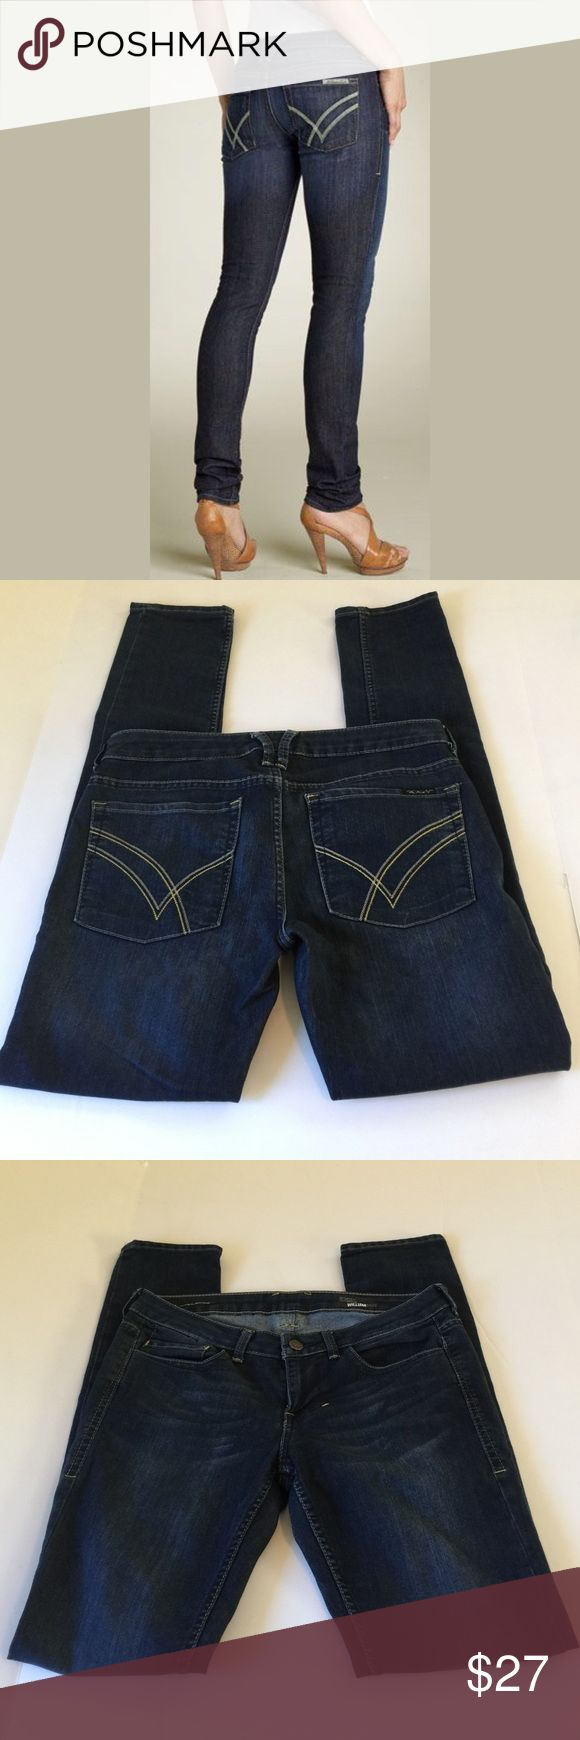 William Rast Jerri Ultra Skinny Jeans, size 29 William rast Jerri Ultra Skinny Jeans in size 29. Color is a dark wash blue with some factory fading. Flat lay measure of the waist is 17. Rise is 8.25, inseam is 32, and leg opening is 6. Made from 75% cotton and 25% polyester. In overall very good condition, please ask if you have any questions. William Rast Jeans Skinny